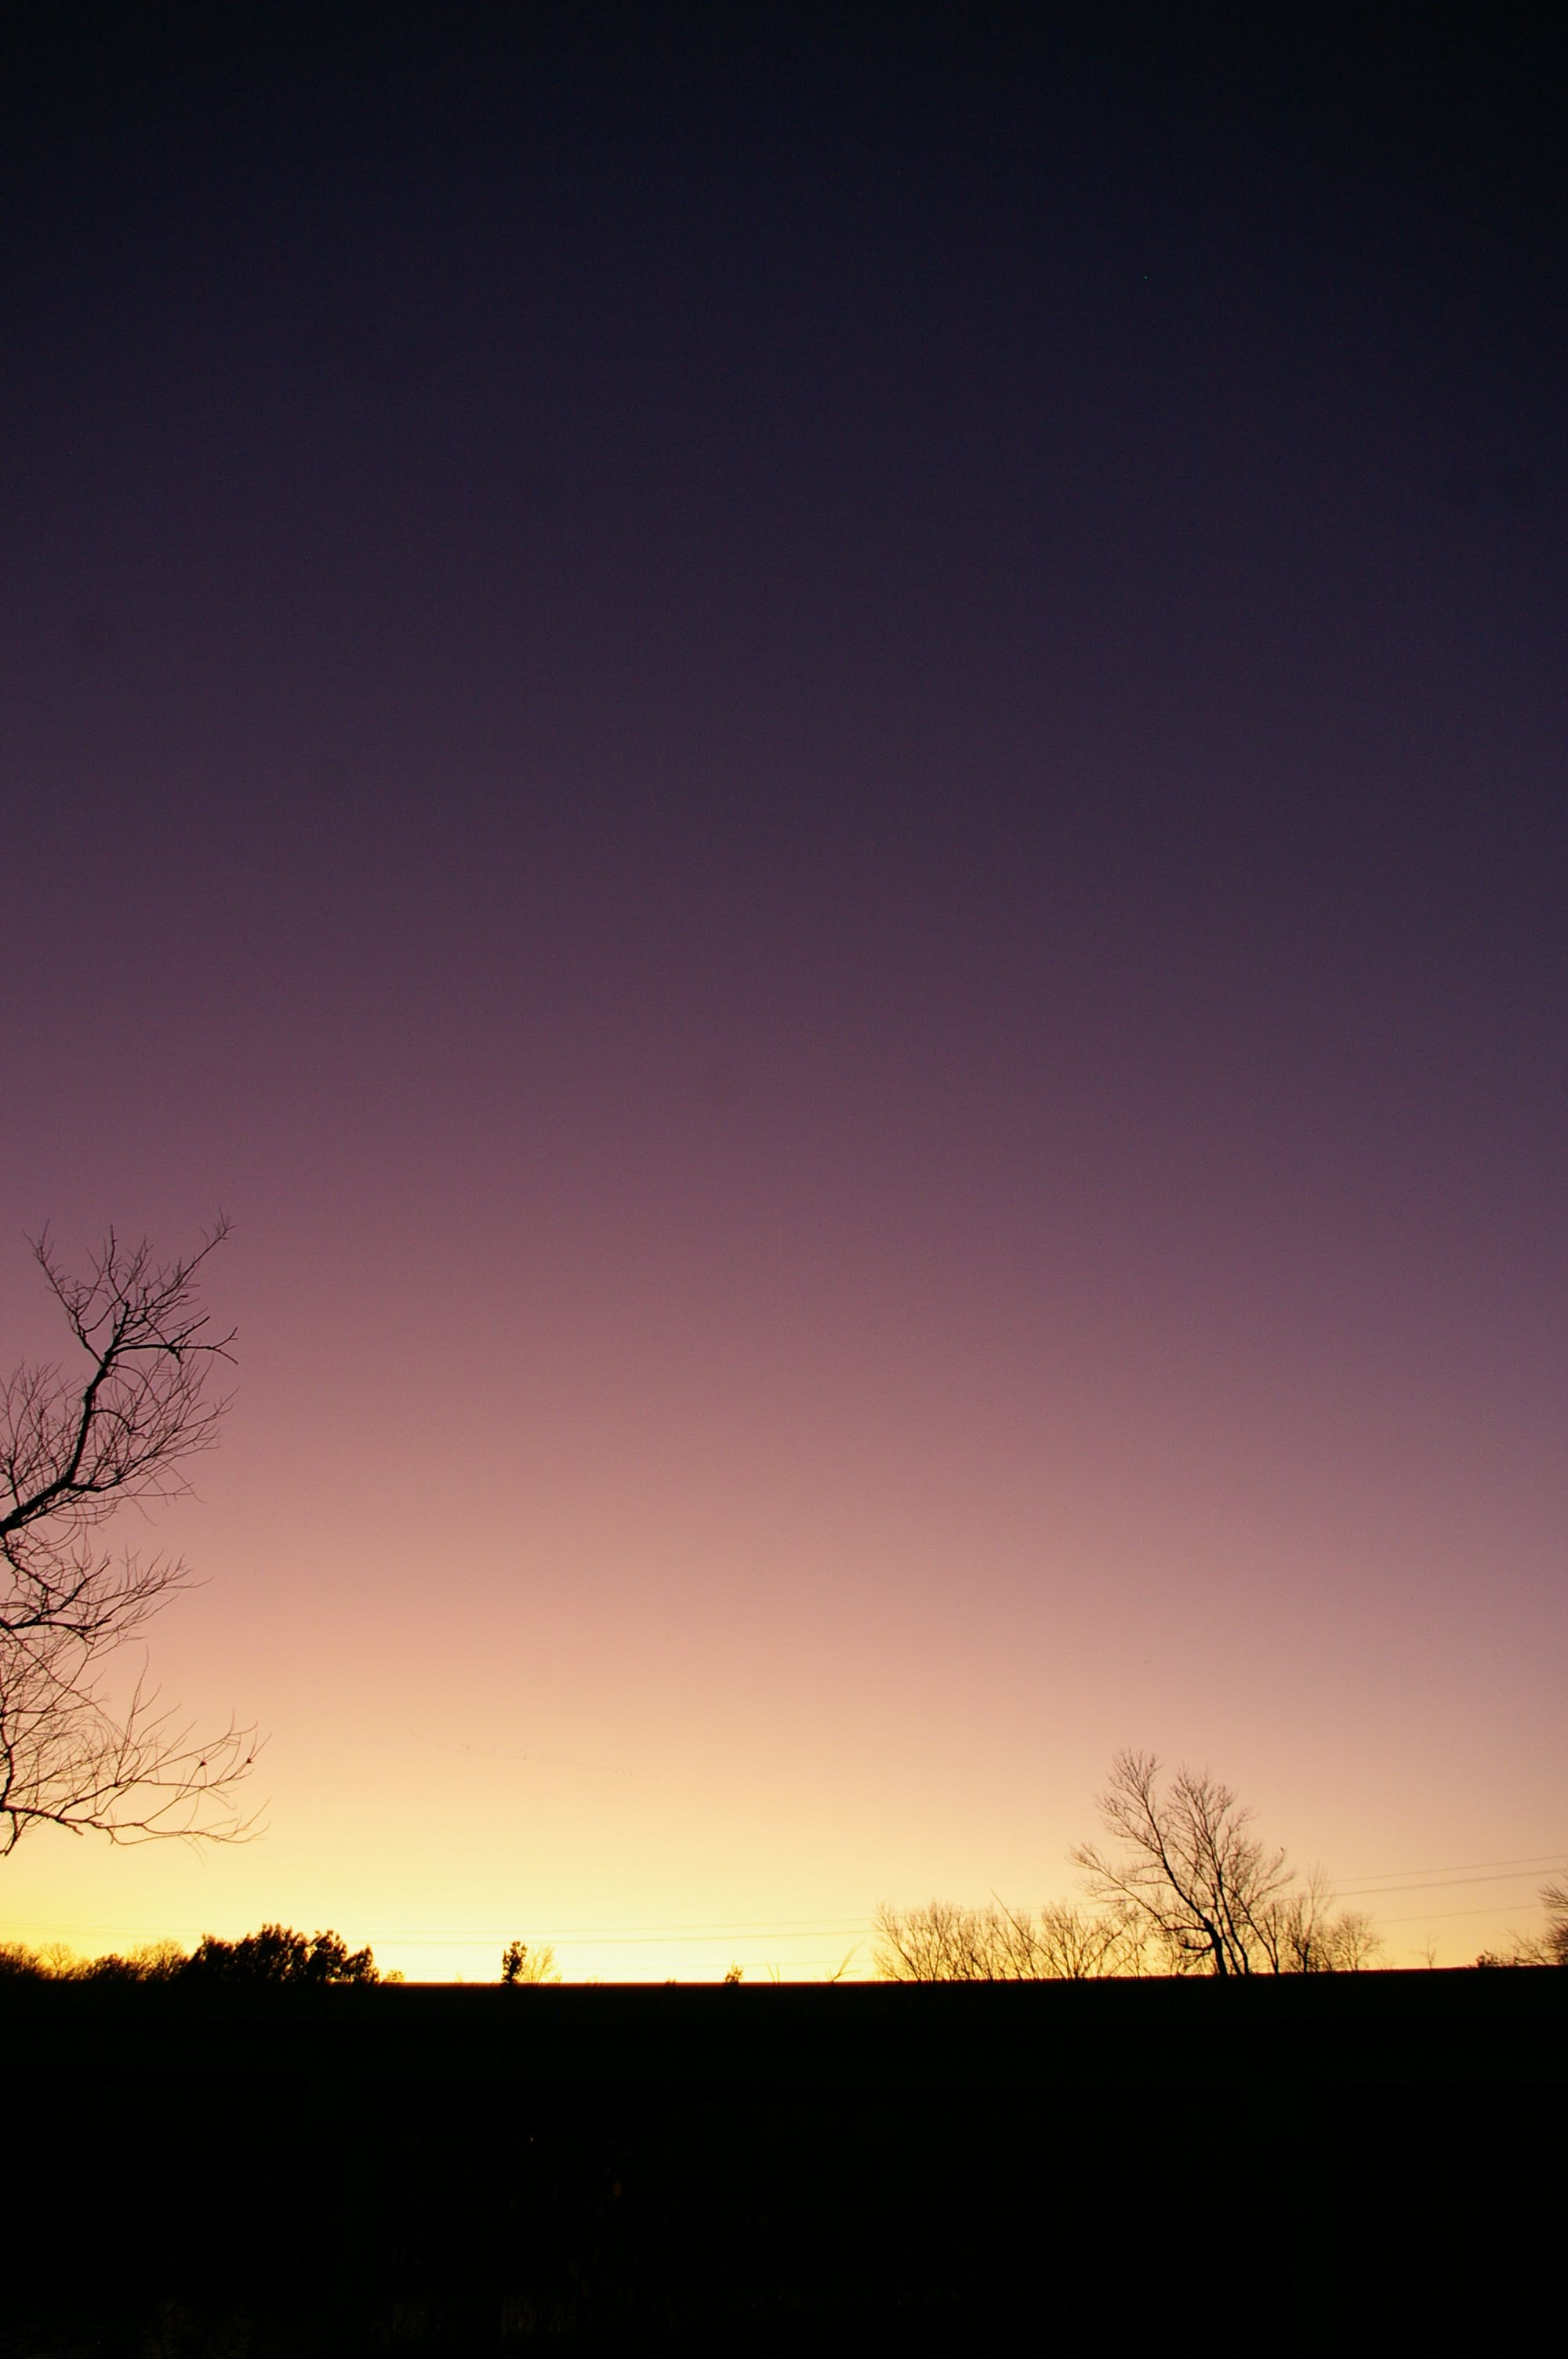 Free stock photo of sunset, trees, purple sky, yellow sky